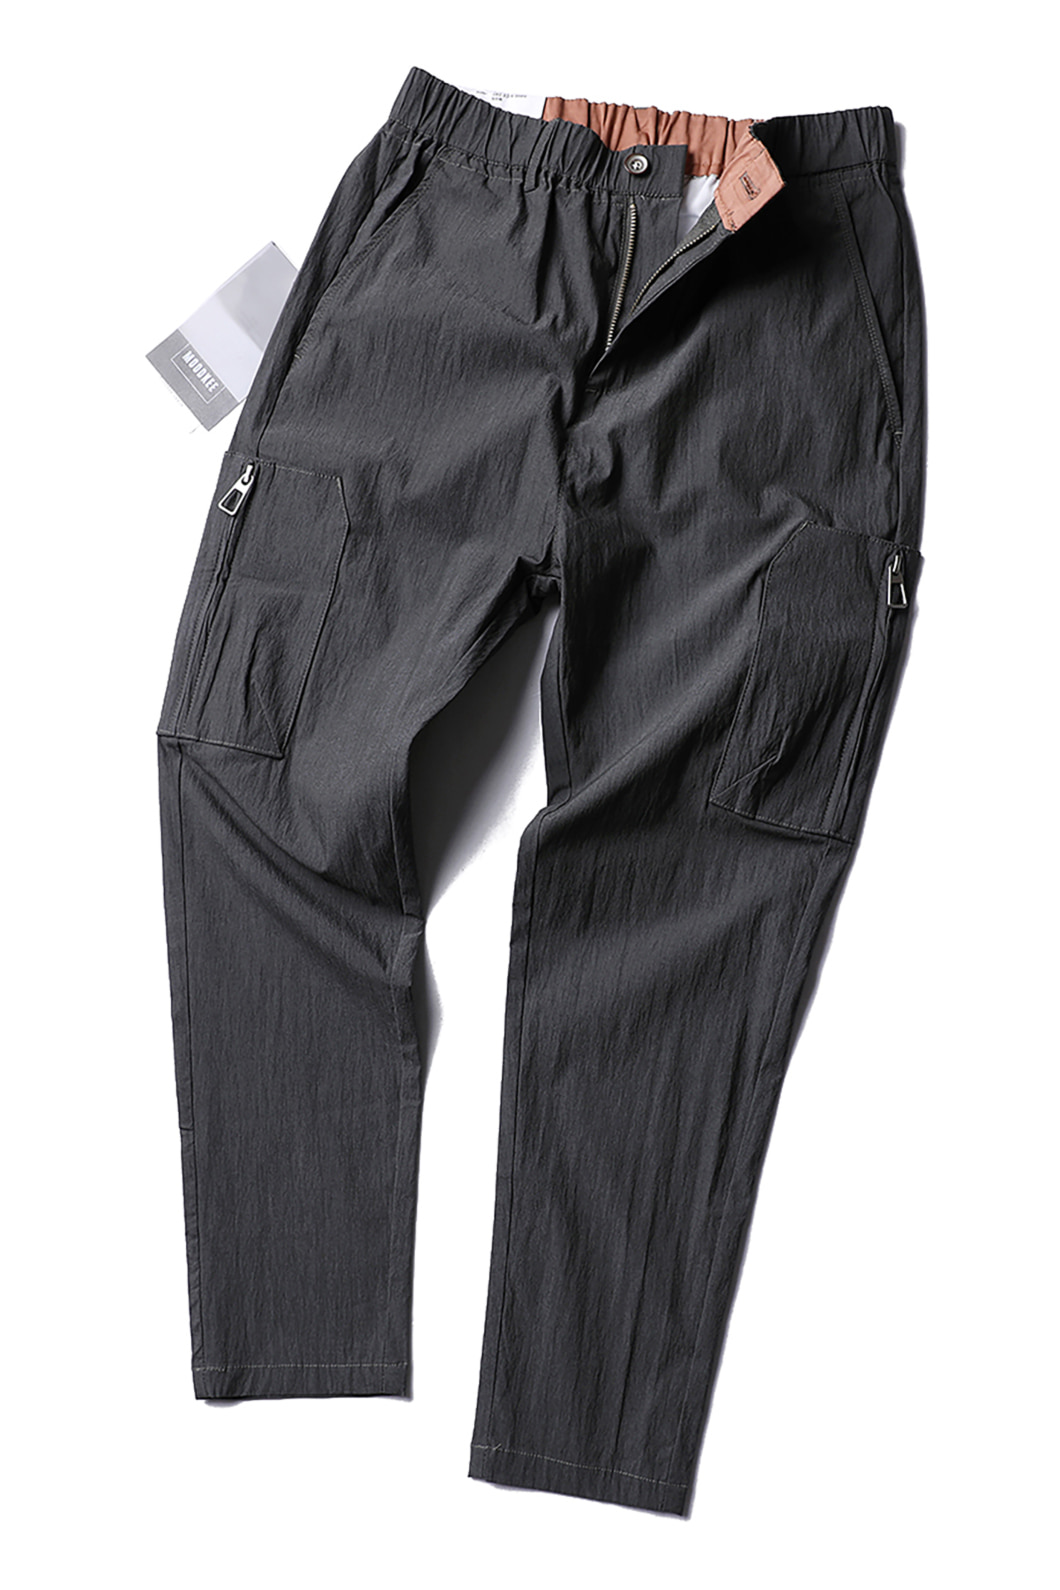 MOODKEE CARGO PANTS-2COLOR수입한정제품